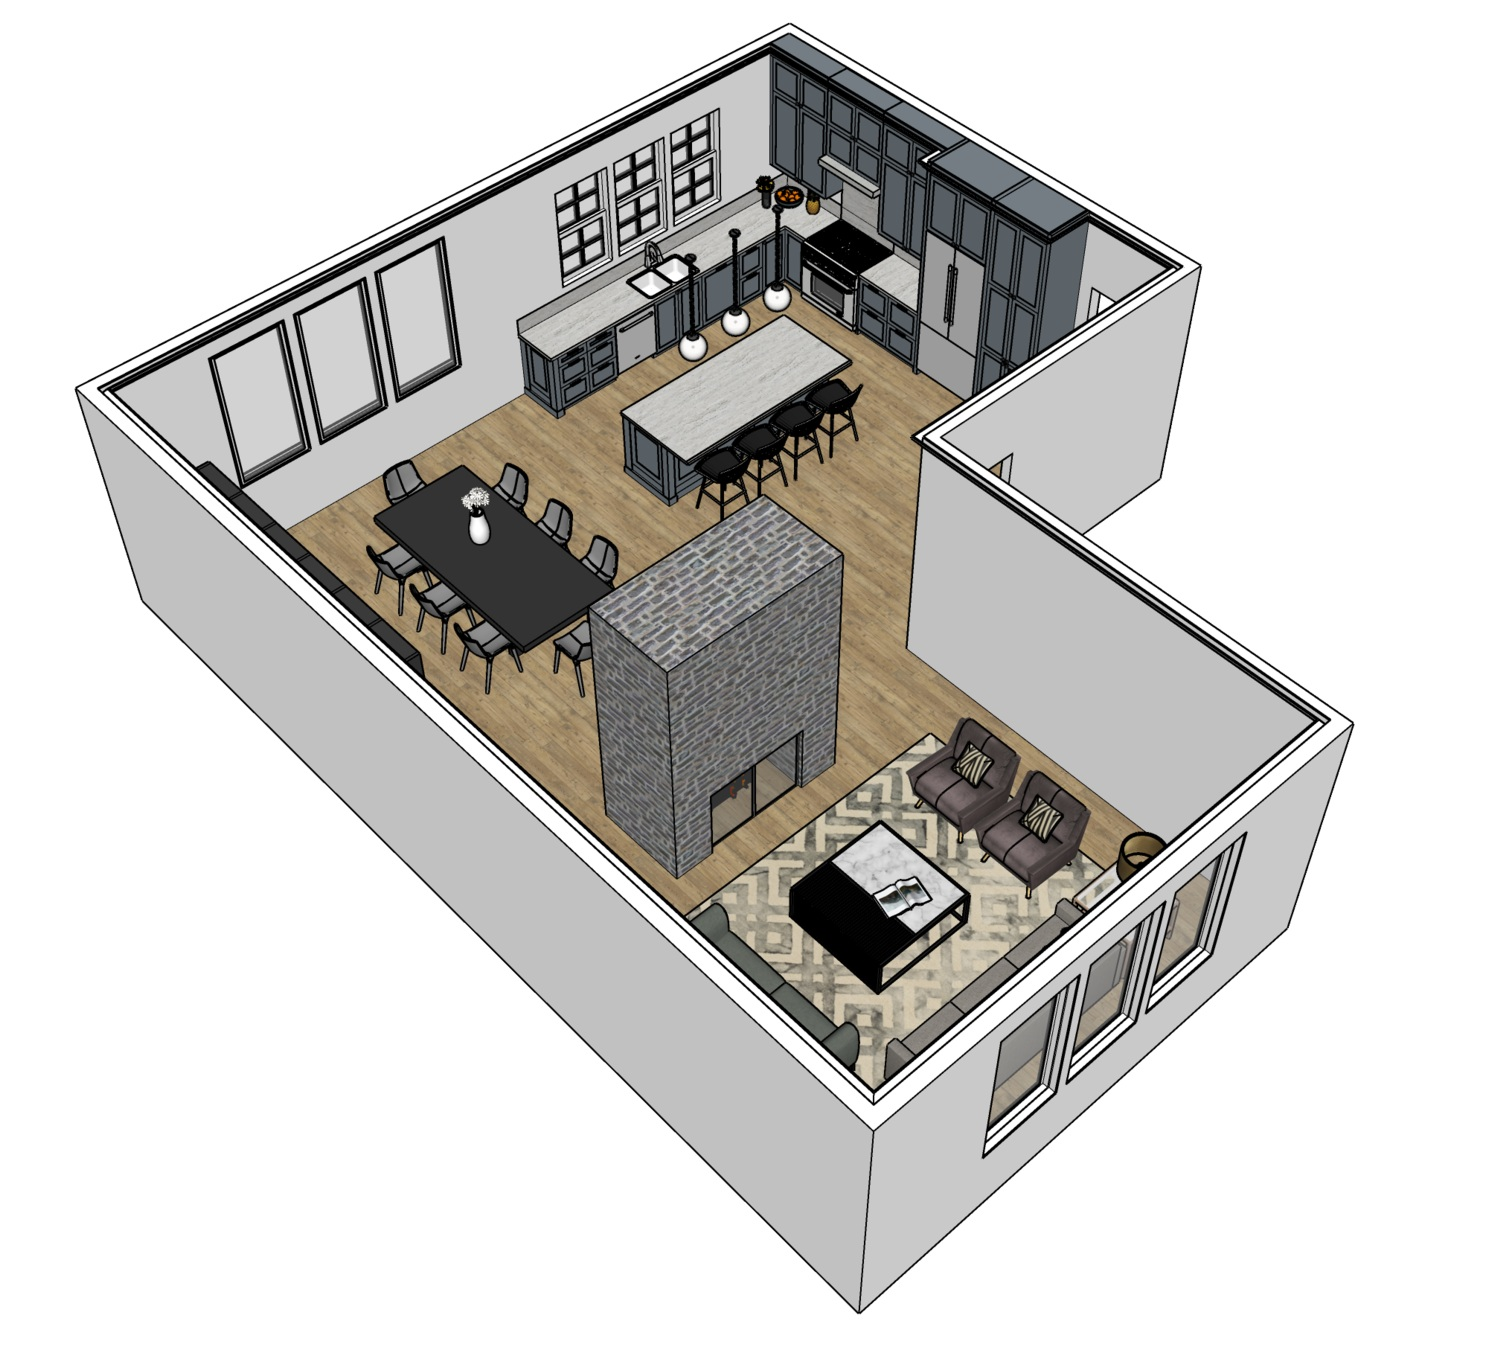 3D Models - The ability to design and draw in 3D will not only help sell your designs to your clients, but it will also help you think through and problem areas in your design.Let's take your floor plans and transform them into 3D models!